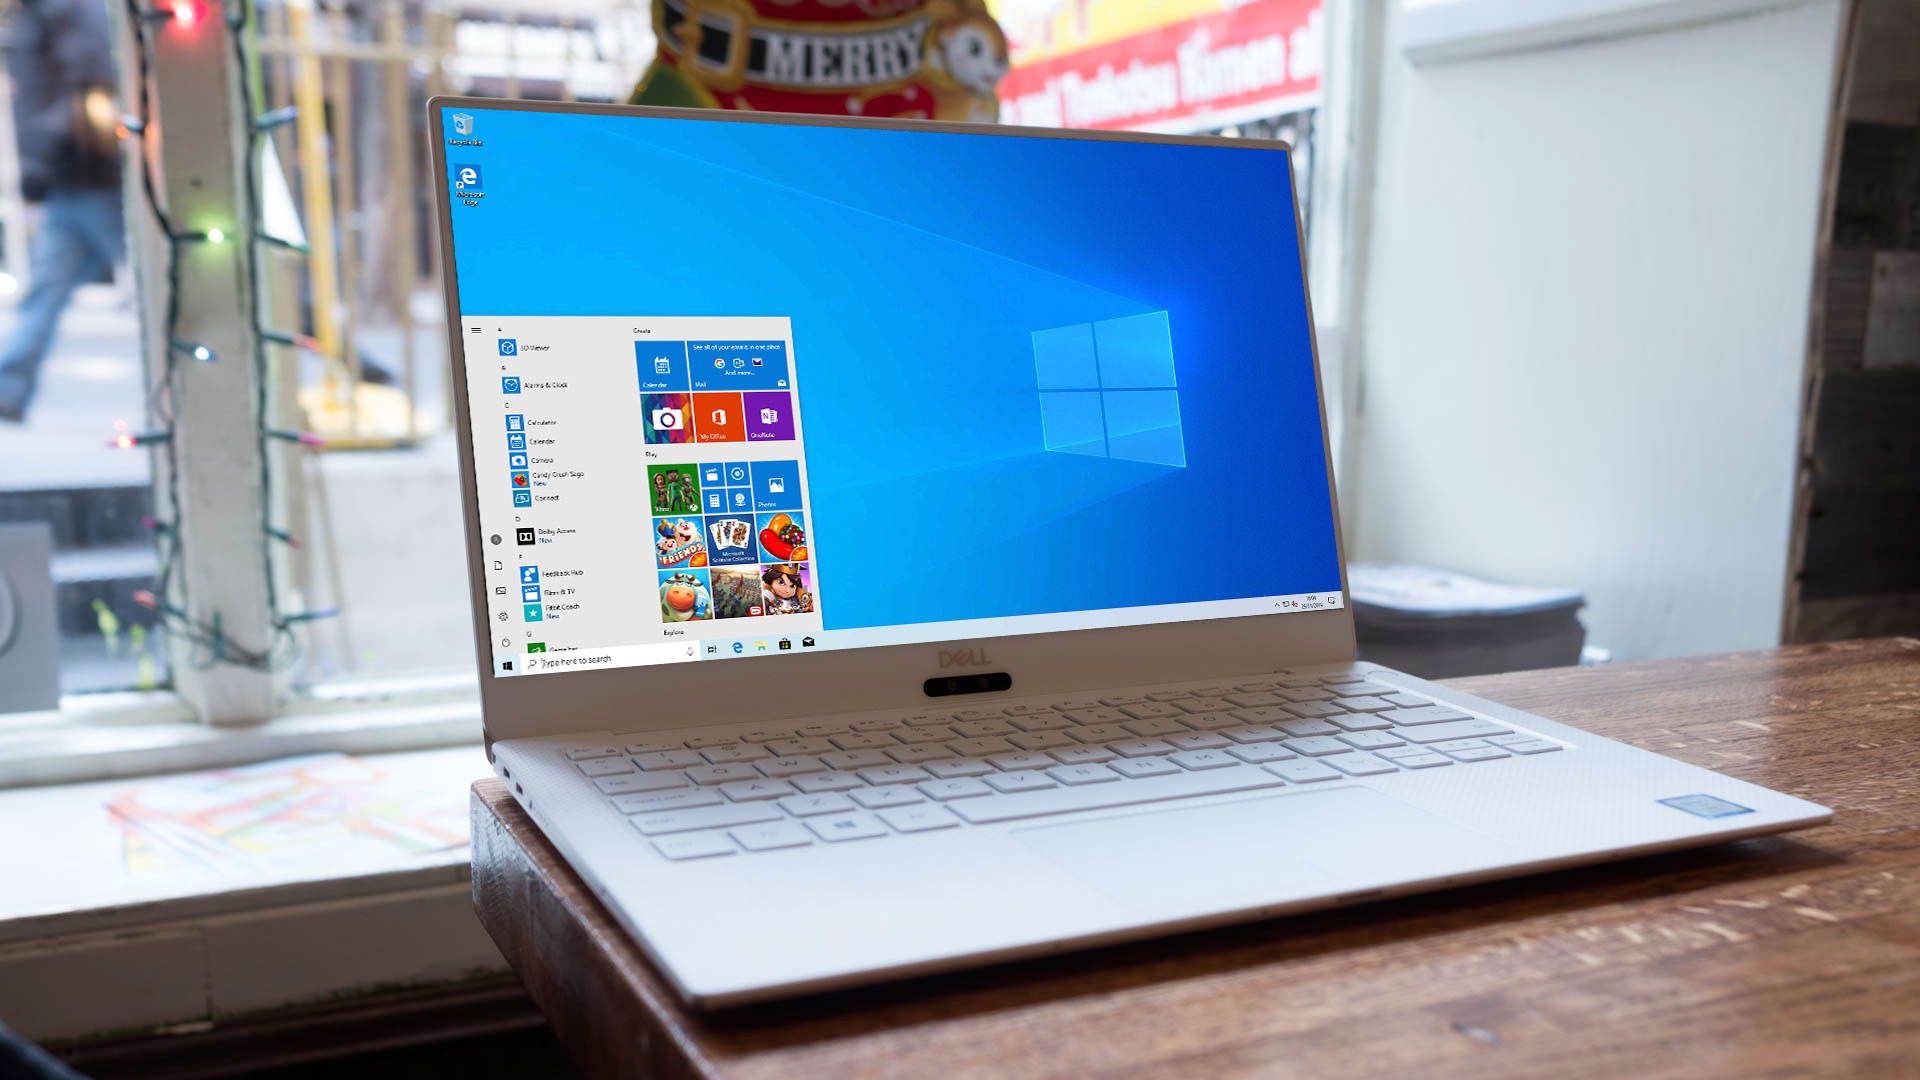 Windows 10 Pro vs Windows 10 Home: All the differences explained